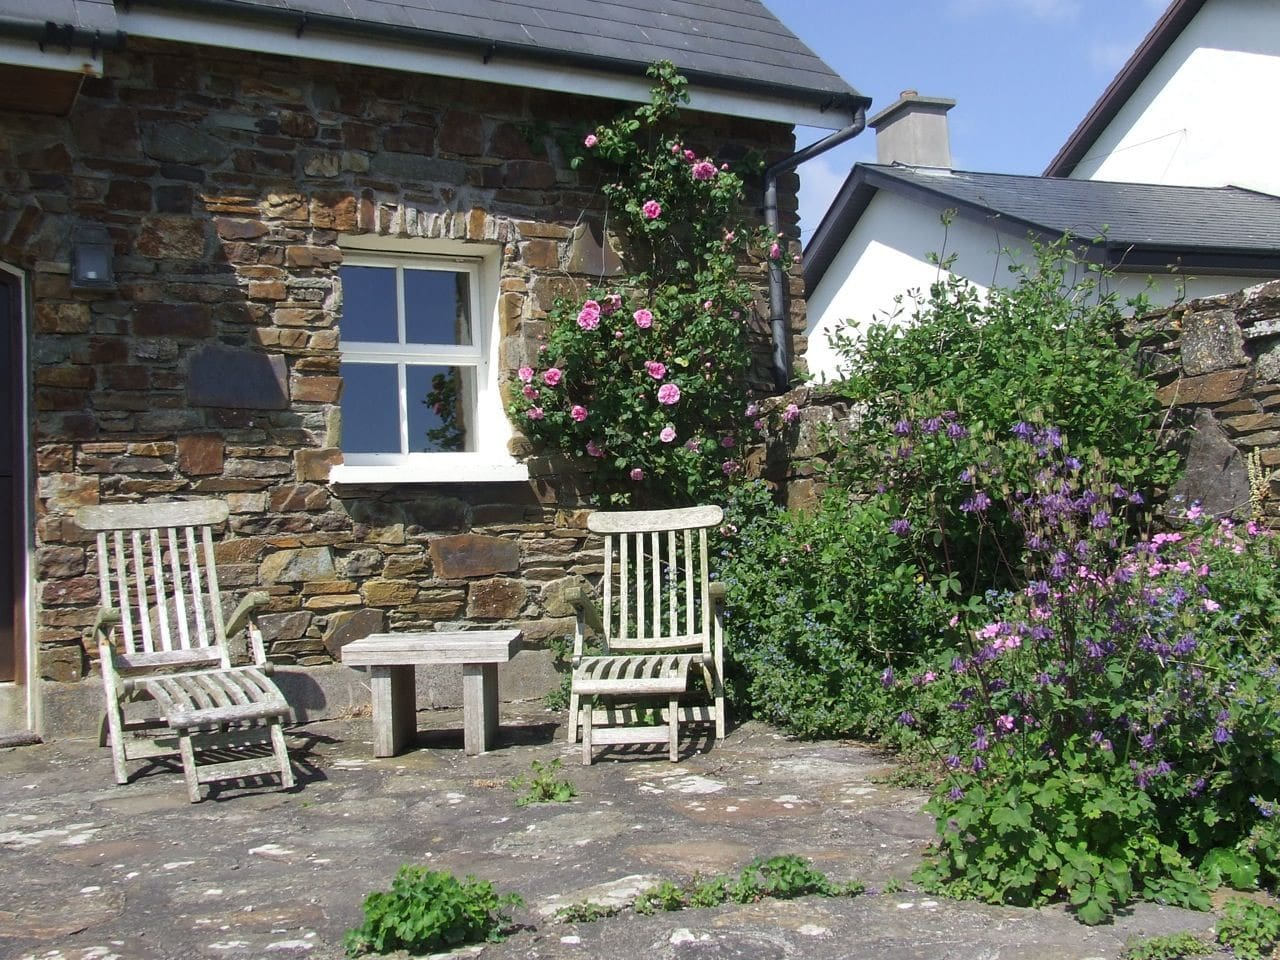 Beautiful coach house is the ideal love nest for honey mooners or surfers hang out with wicked waves on Dunworly Beach